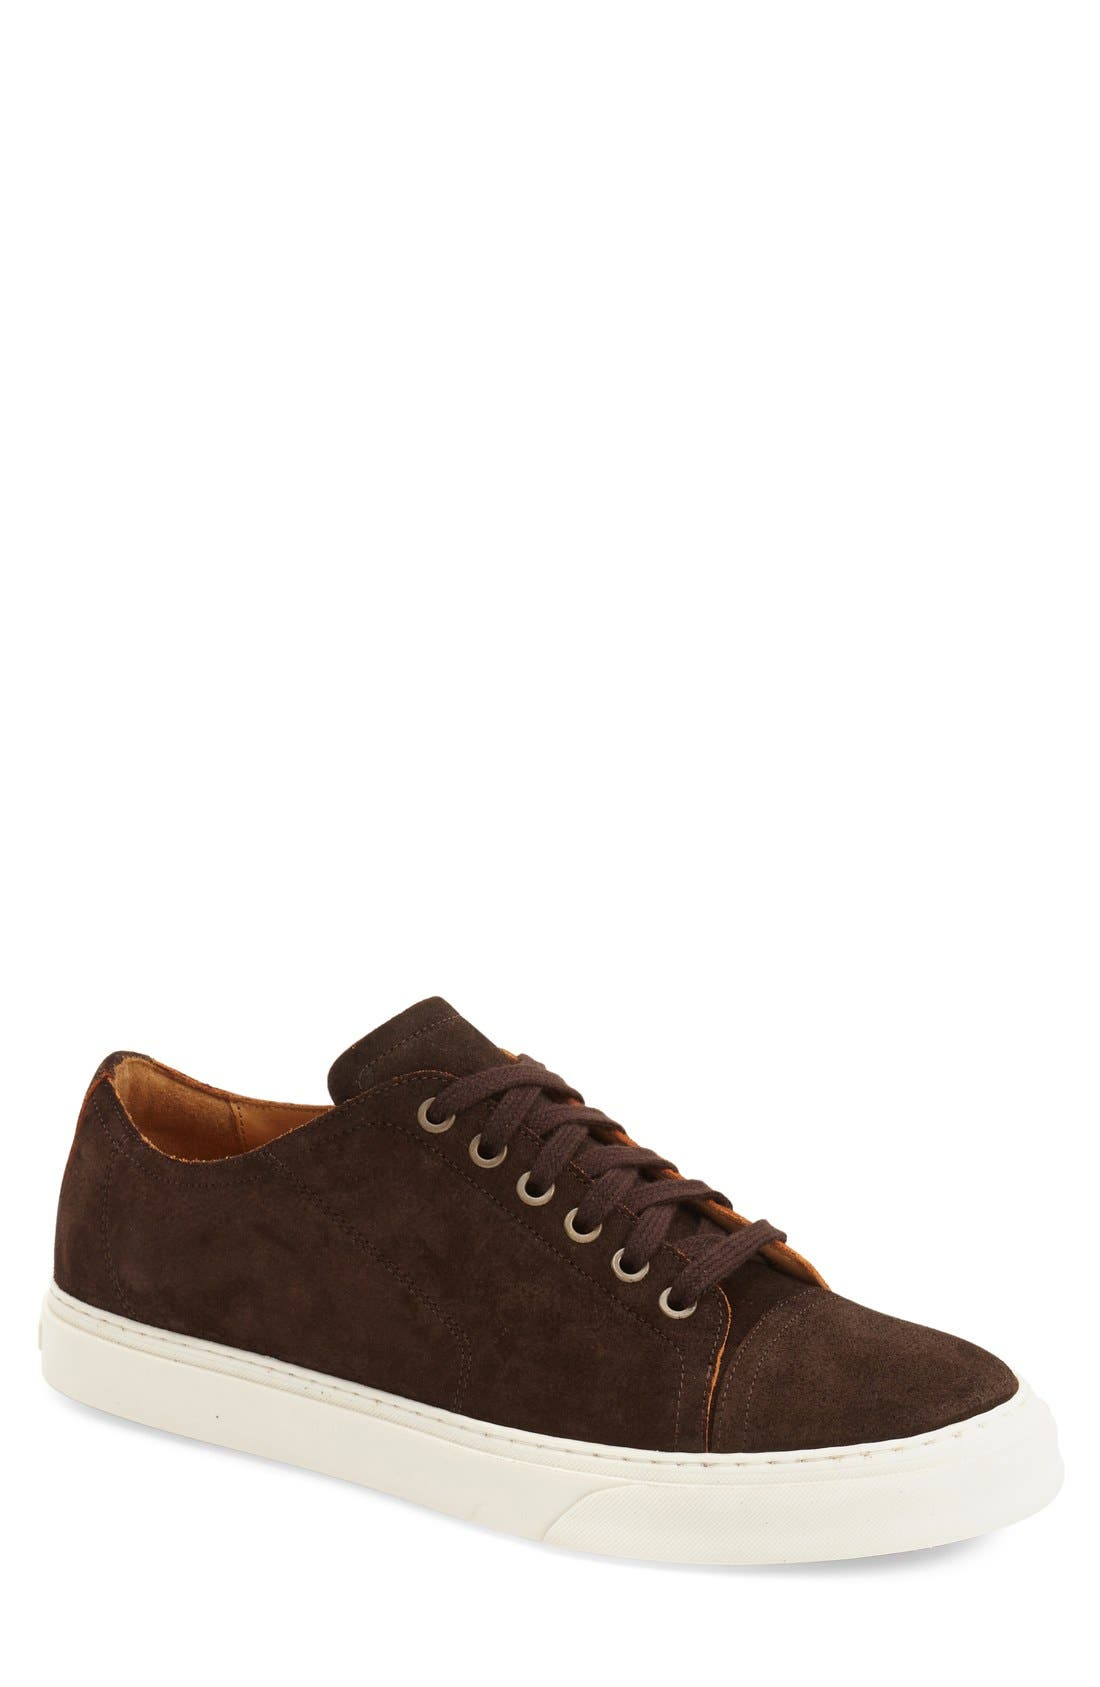 'Quort' Sneaker,                             Main thumbnail 1, color,                             Chocolate Suede